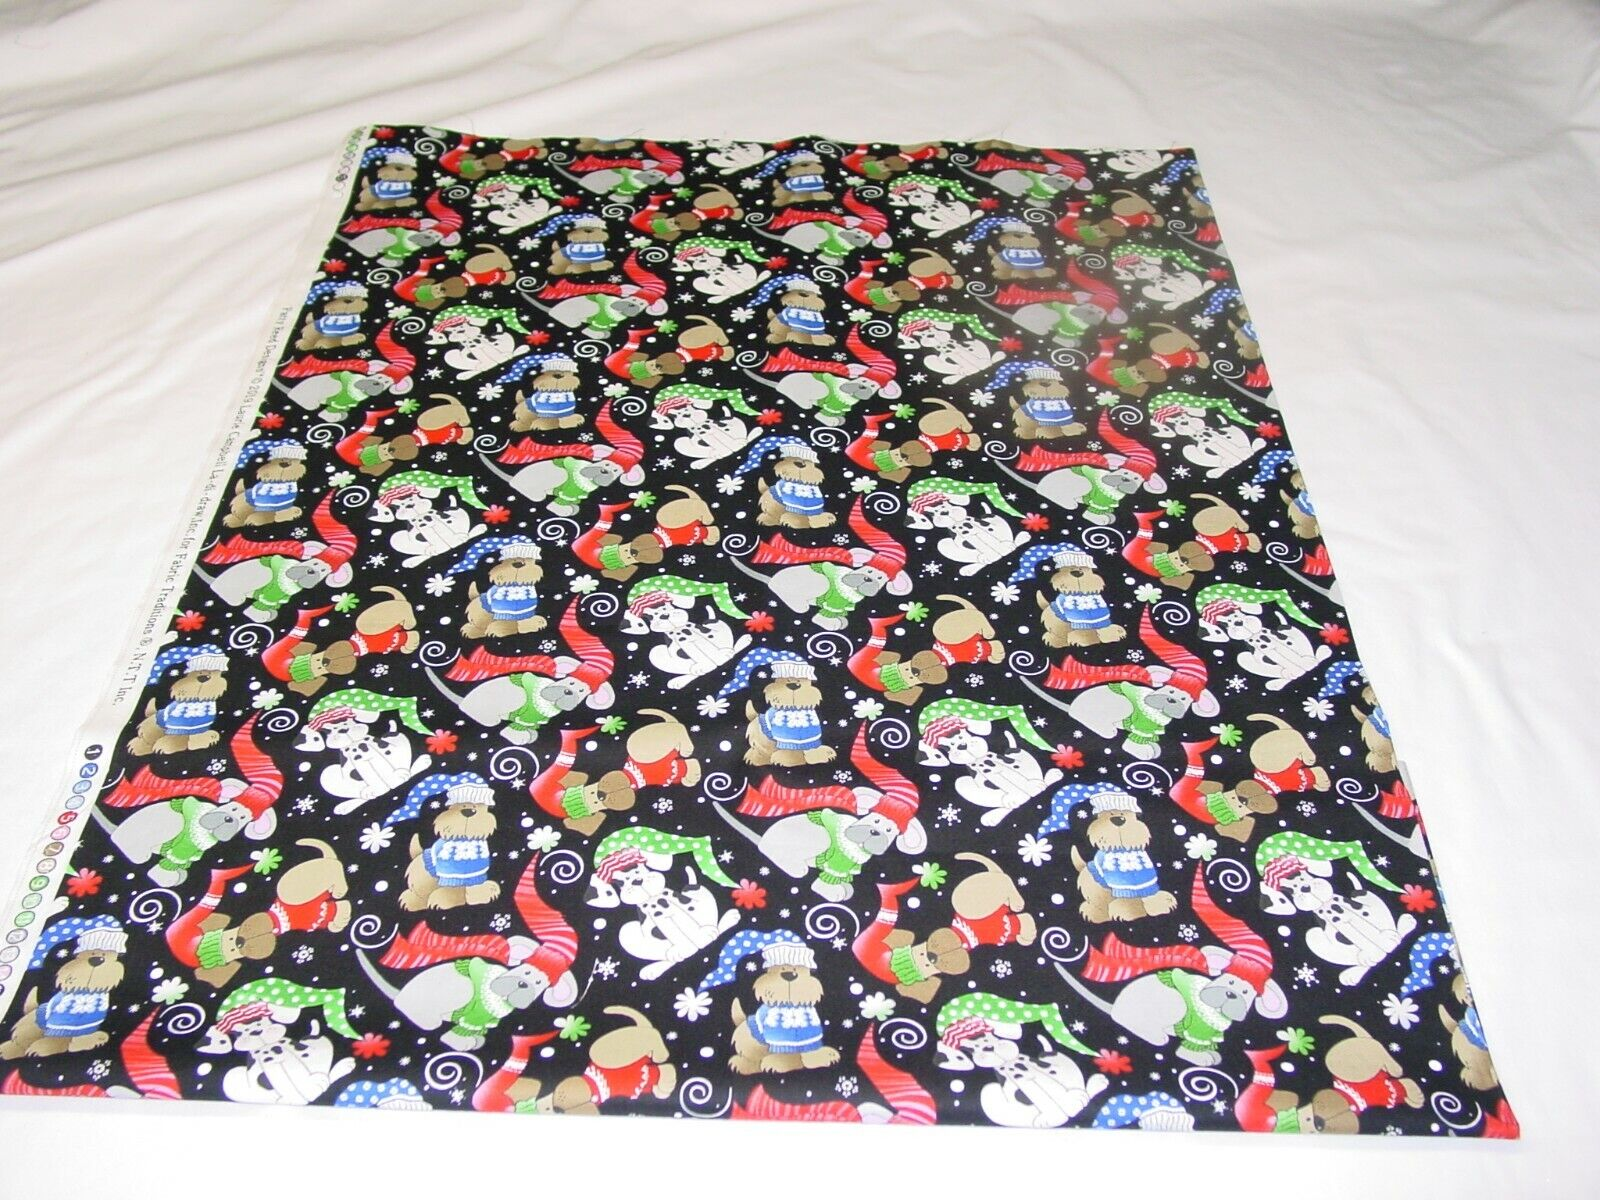 FABRIC TRADITION WINTER DOGS 100 COTTON REMNANT LENGTH 33 X WIDTH 43  - $9.50